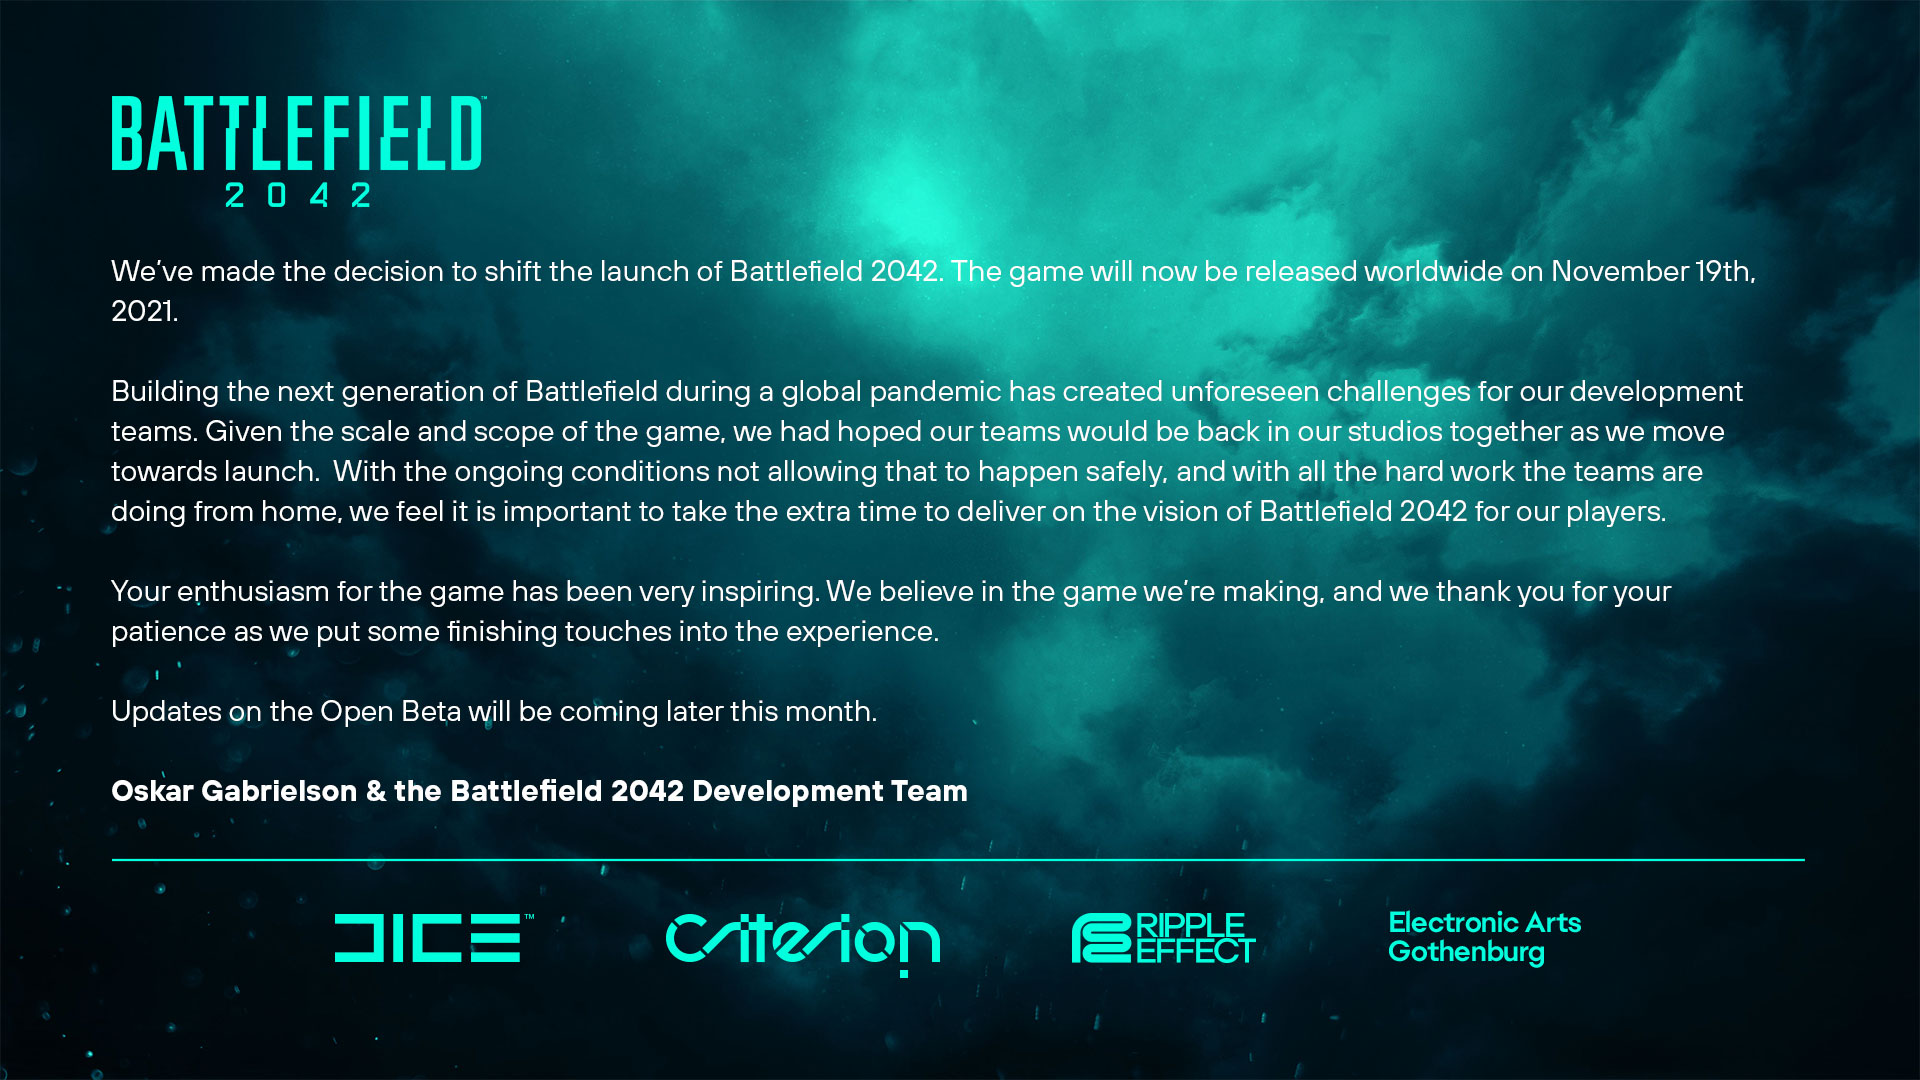 We've made the decision to shift the launch of Battlefield 2042. The game will now be released worldwide on November 19th, 2021. Building the next generation of Battlefield during a global pandemic has created unforeseen challenges for our development teams. Given the scale and scope of the game, we had hoped our teams would be back in our studios together as we move towards launch.  With the ongoing conditions not allowing that to happen safely, and with all the hard work the teams are doing from home, we feel it is important to take the extra time to deliver on the vision of Battlefield 2042 for our players. Your enthusiasm for the game has been very inspiring. We believe in the game we're making, and we thank you for your patience as we put some finishing touches into the experience. Updates on the Open Beta will be coming later this month. Oskar Gabrielson & the Battlefield 2042 Development Team Studio GM, DICE